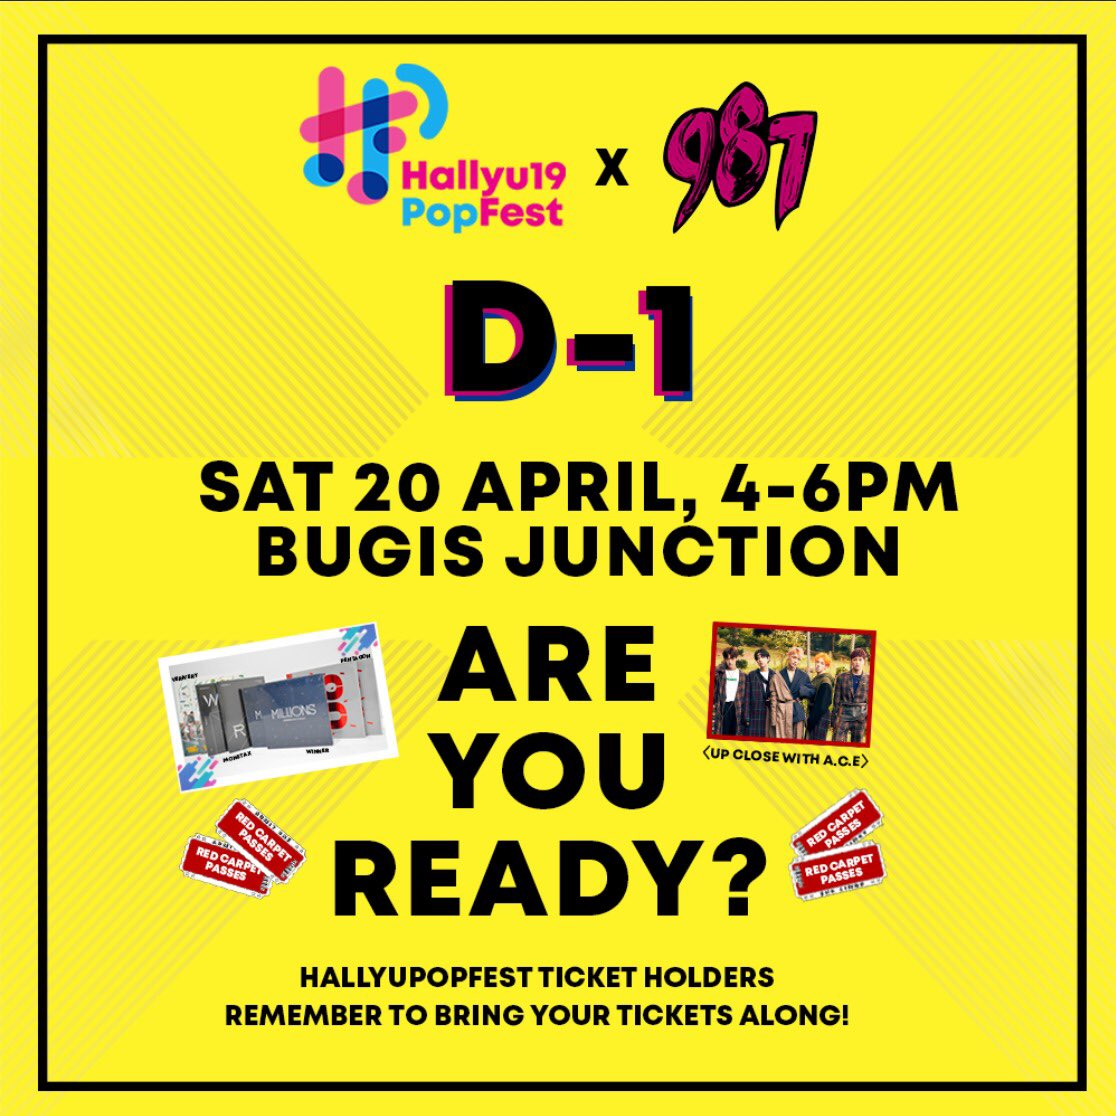 D-1 to HPFx987 event happening tomorrow, 4-6PM at Bugis Junction! Get your Kpop gear ready and win yourself some #HallyuPopFest2019 Artiste Merchandise, exclusive Red Carpet Passes and a chance to get <UP CLOSE WITH A.C.E> on 27 April at Wisma Atria! See you there! 😉✨